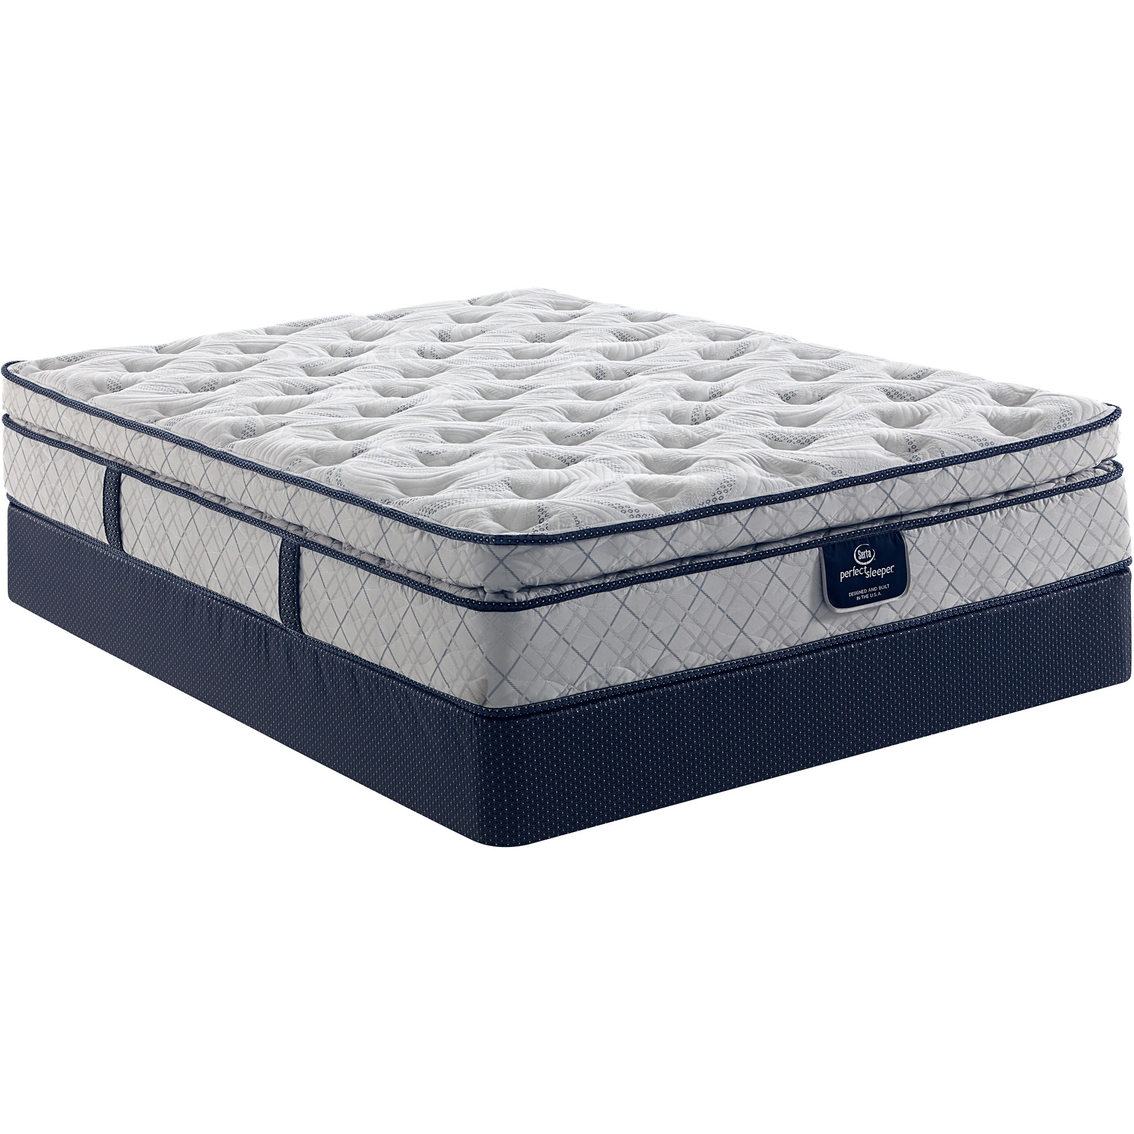 Low Profile Innerspring Mattress Serta Perfect Sleeper Hanslow Super Pillow Top Mattress